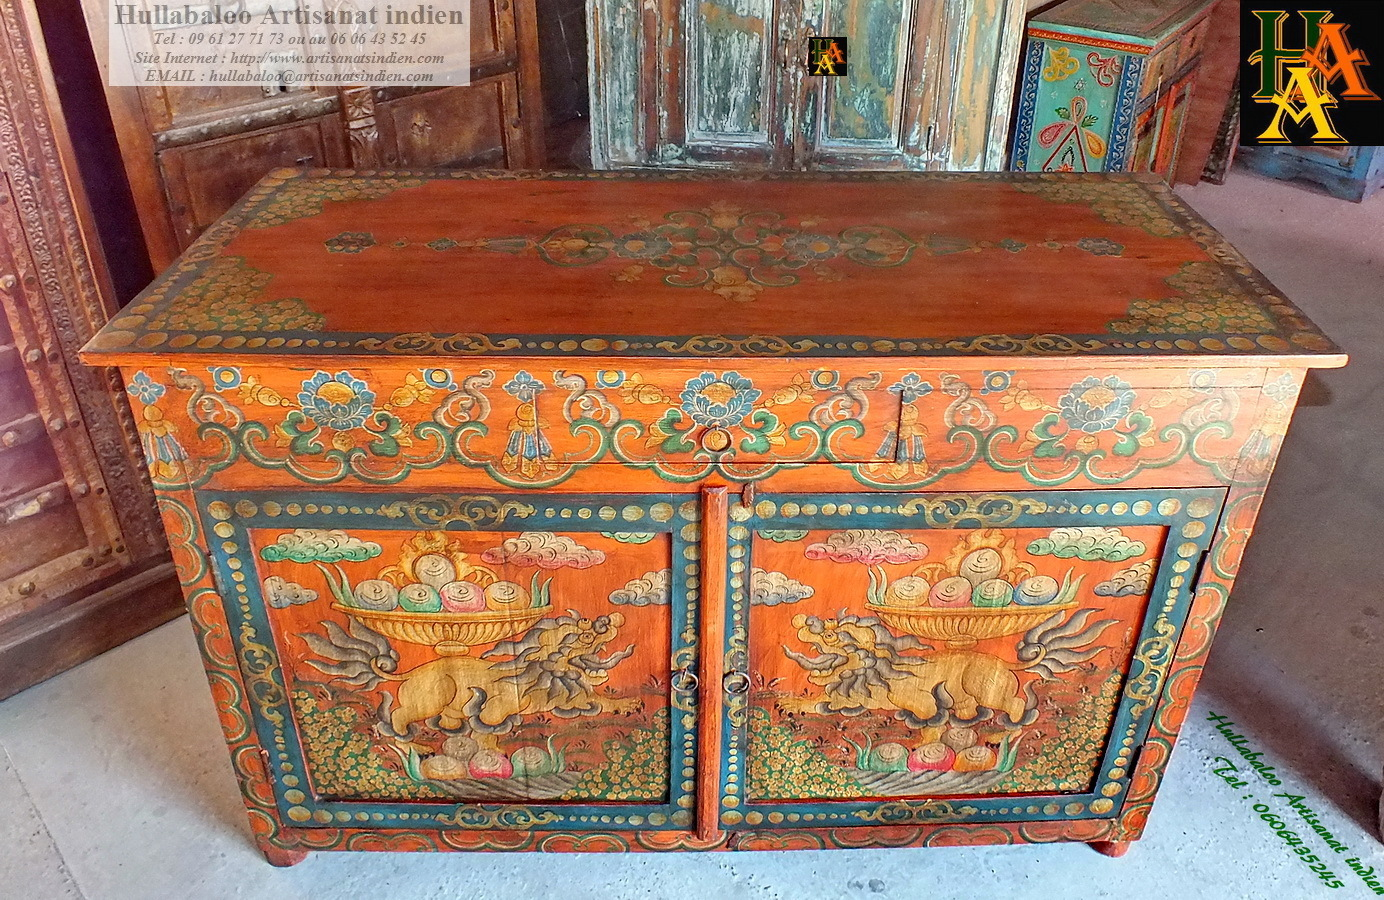 Meuble Tibetain Buffet Peint Style Tibétain Jn7 La205 Meubles Indiens